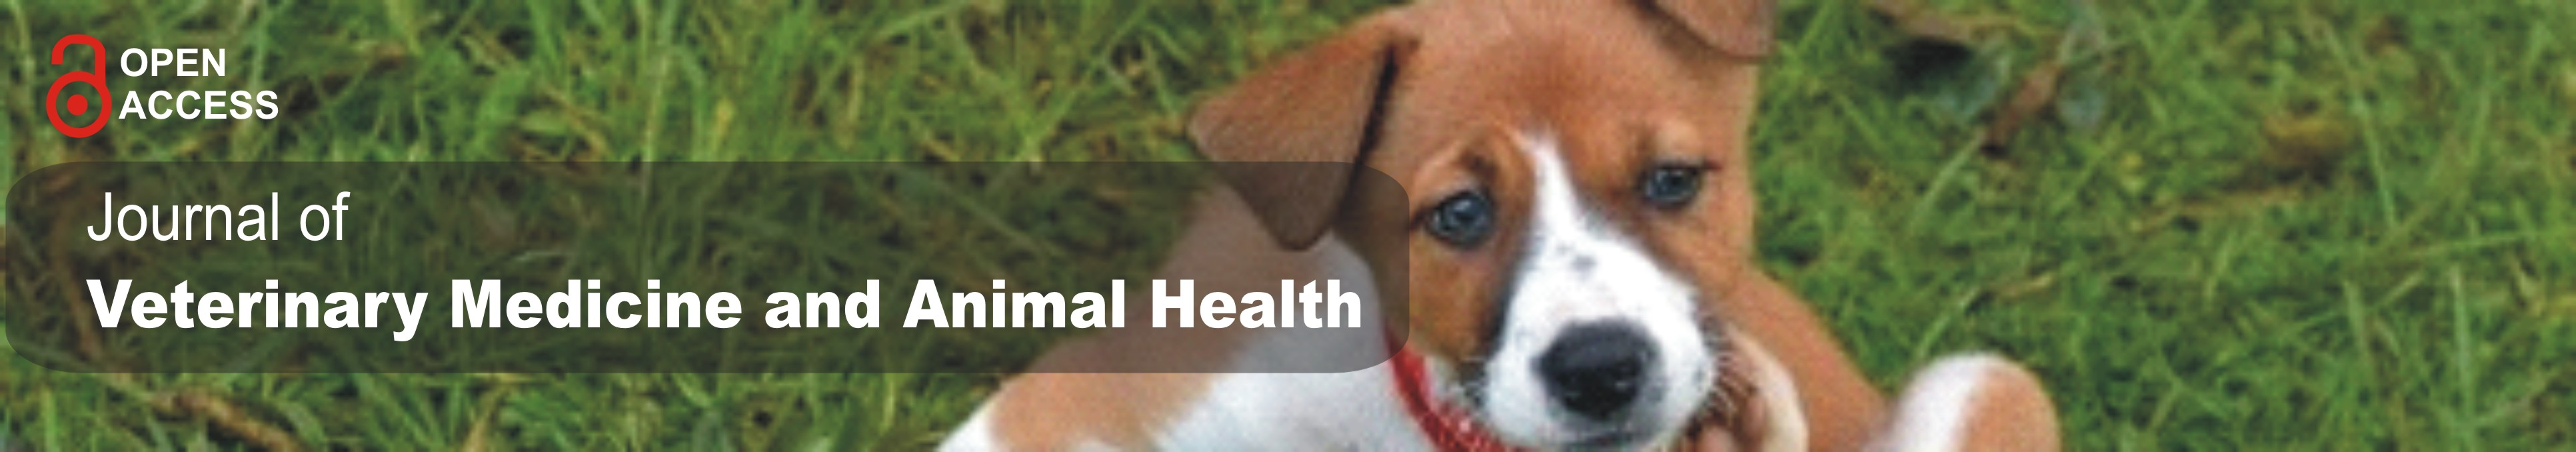 Journal of Veterinary Medicine and Animal Health